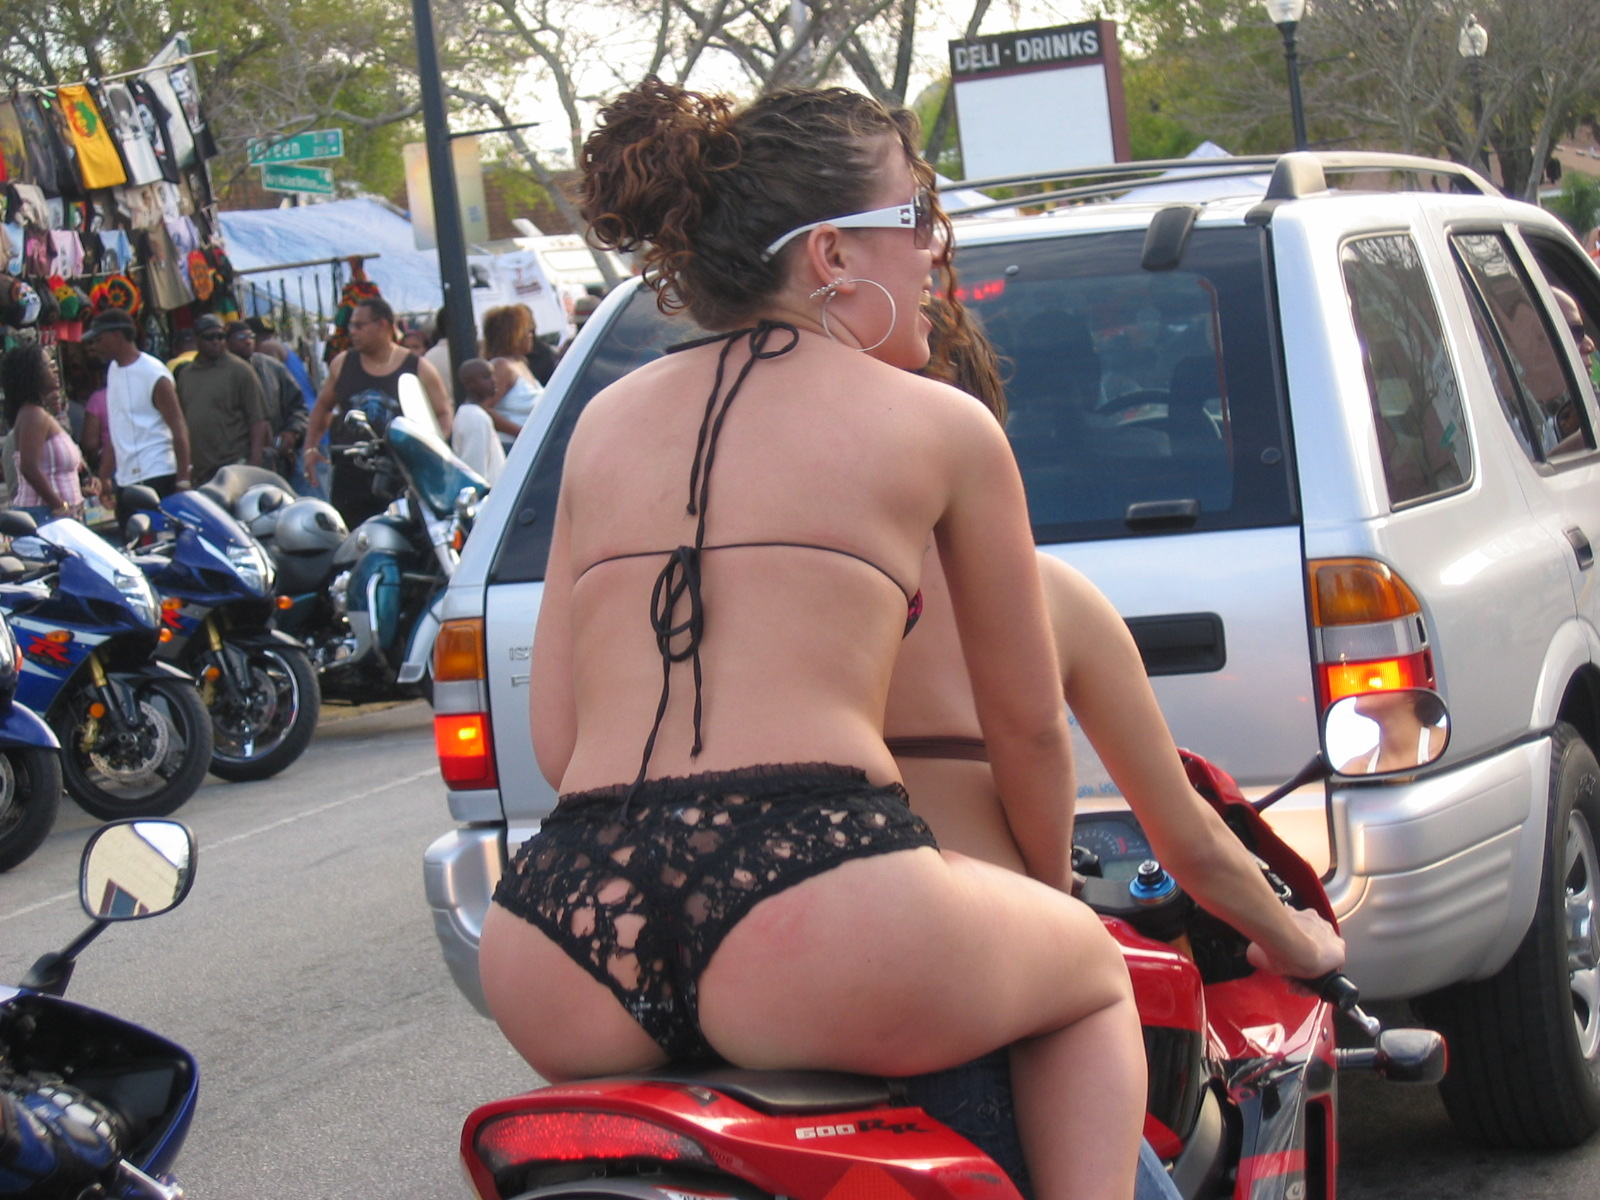 Mulheres de garupa na moto, gostosa de carona na moto, babes on bike, Women on bike,woman on the bike ride,babe on the bike ride, sexy on bike ride, sexy on motorcycle ride, sexy on bike, sexy on motorcycle, babes on bike, ragazza in moto, donna calda in moto,femme chaude sur la moto,mujer caliente en motocicleta, chica en moto, heiße Frau auf dem Motorrad